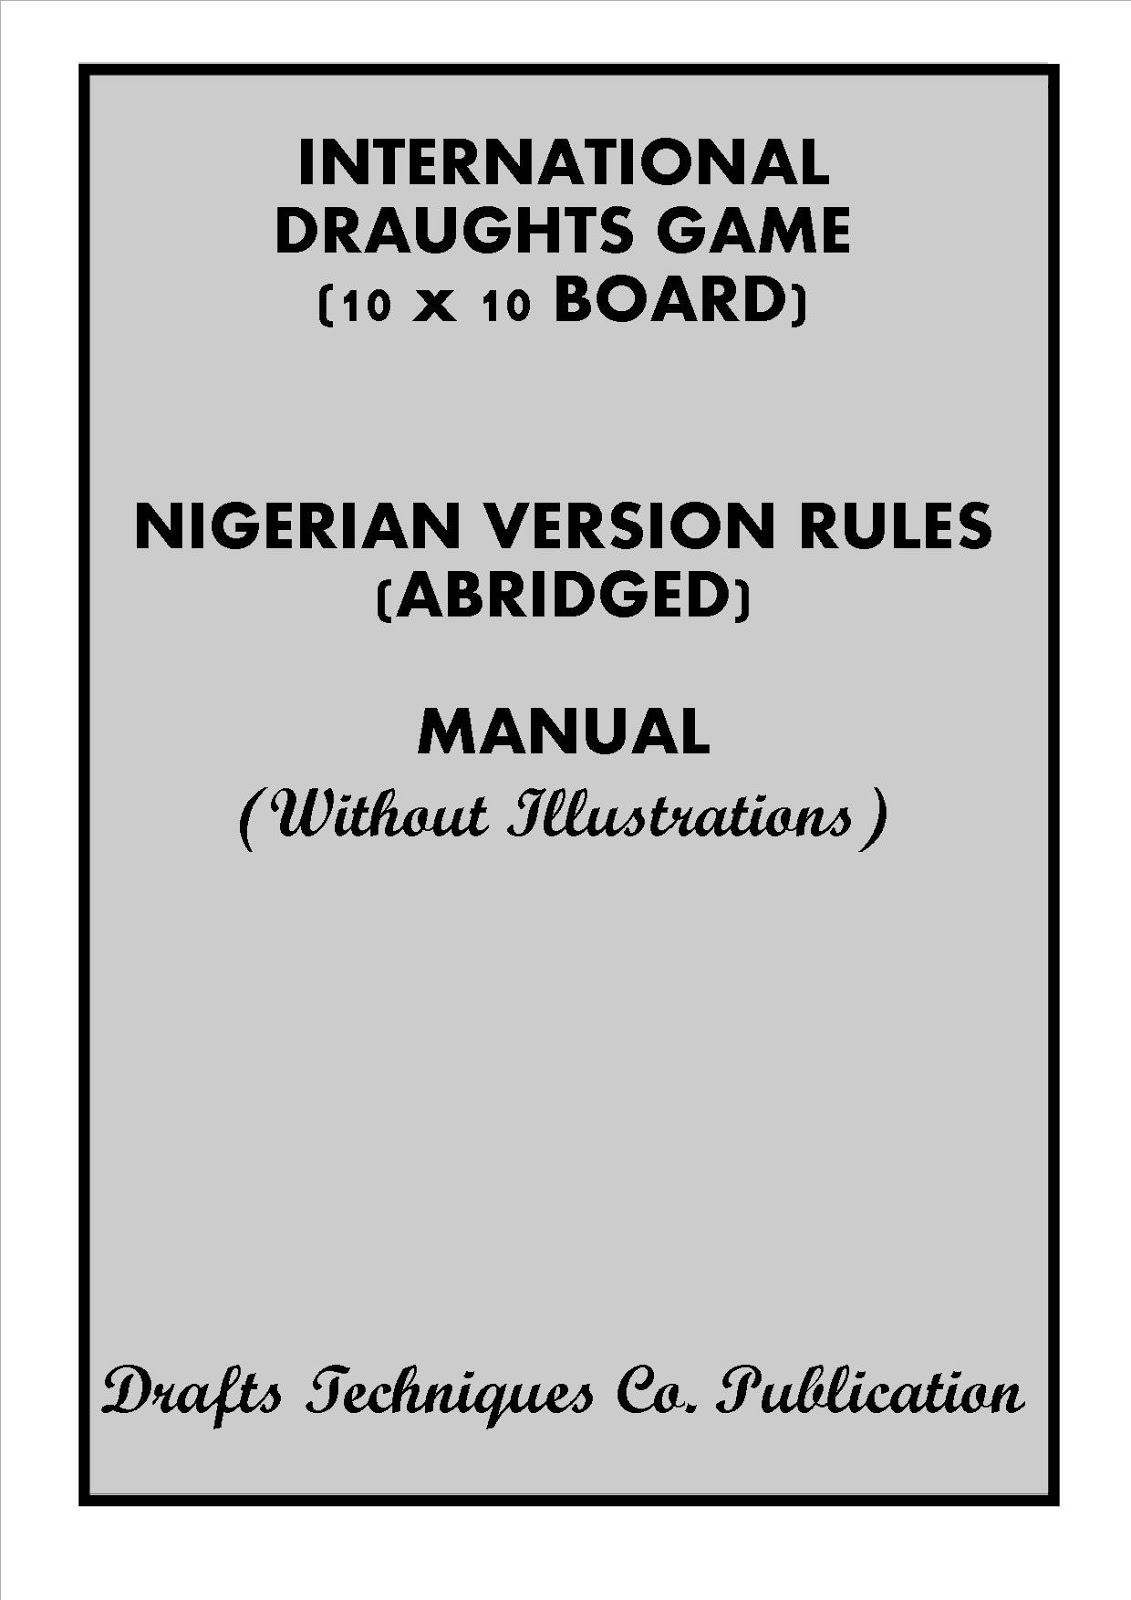 NIGERIAN DRAUGHTS GAME - RULES MANUALS (FREE E-BOOKS)